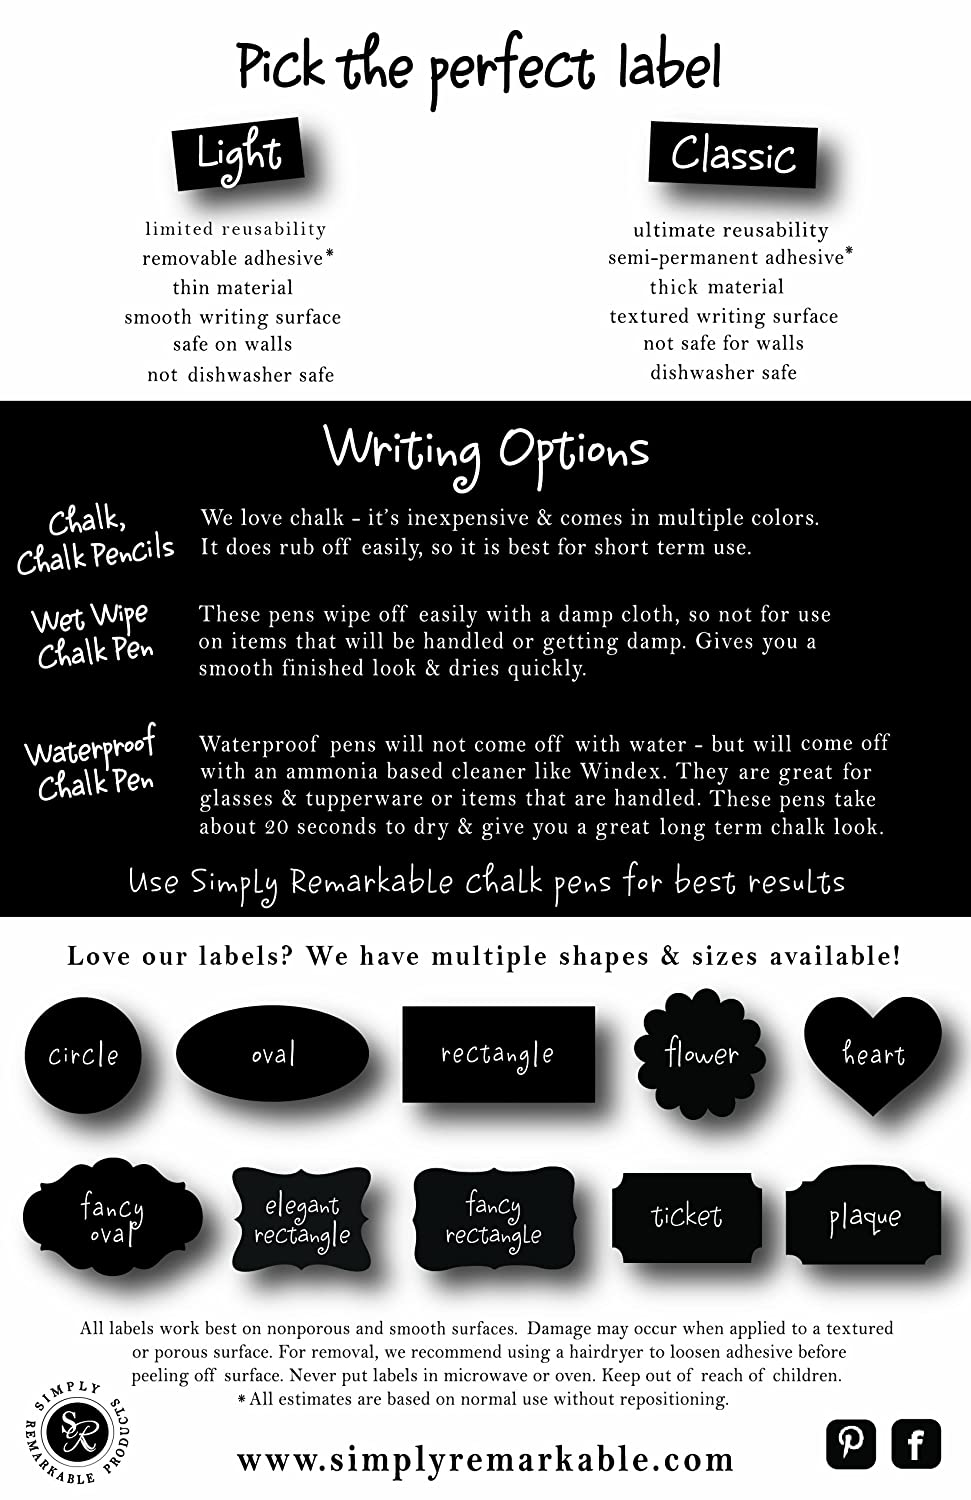 Decorating Crafts 18 Circle Shape 2.5 Adhesive Chalkboard Stickers W For Organizing Simply Remarkable Reusable Chalk Labels Can be Wiped Clean and Reused Light Material with Removable Adhesive and Smooth Writing Surface Personalized Hostess Gifts